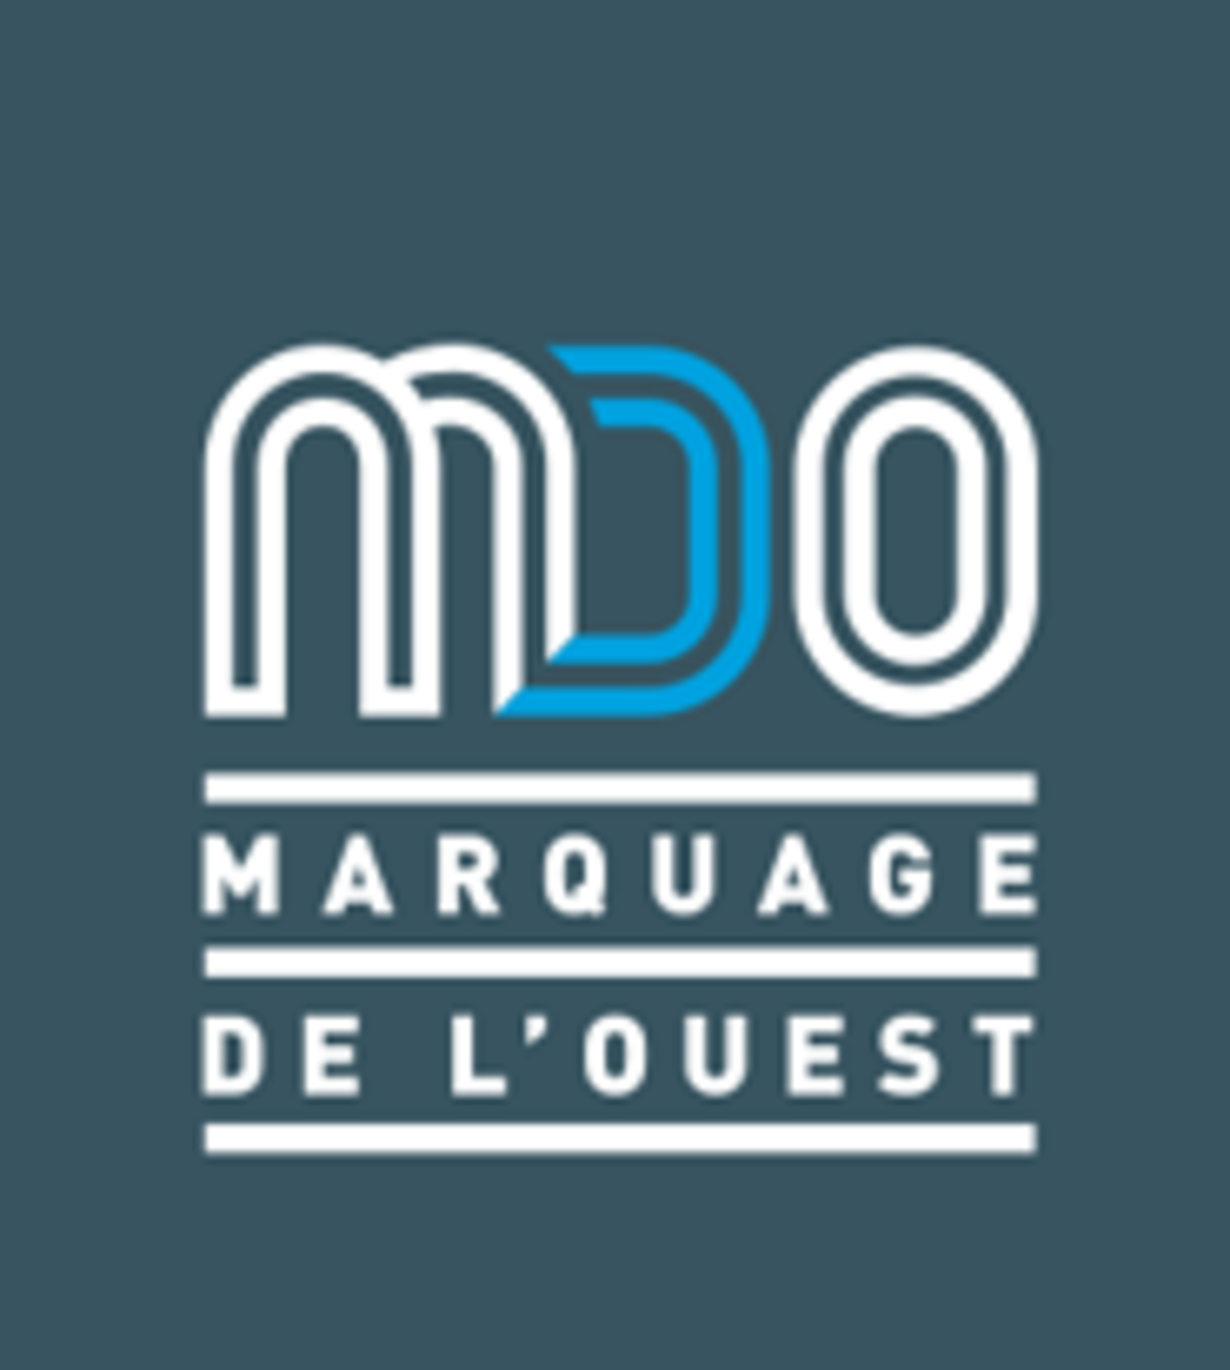 mdo grand ouest